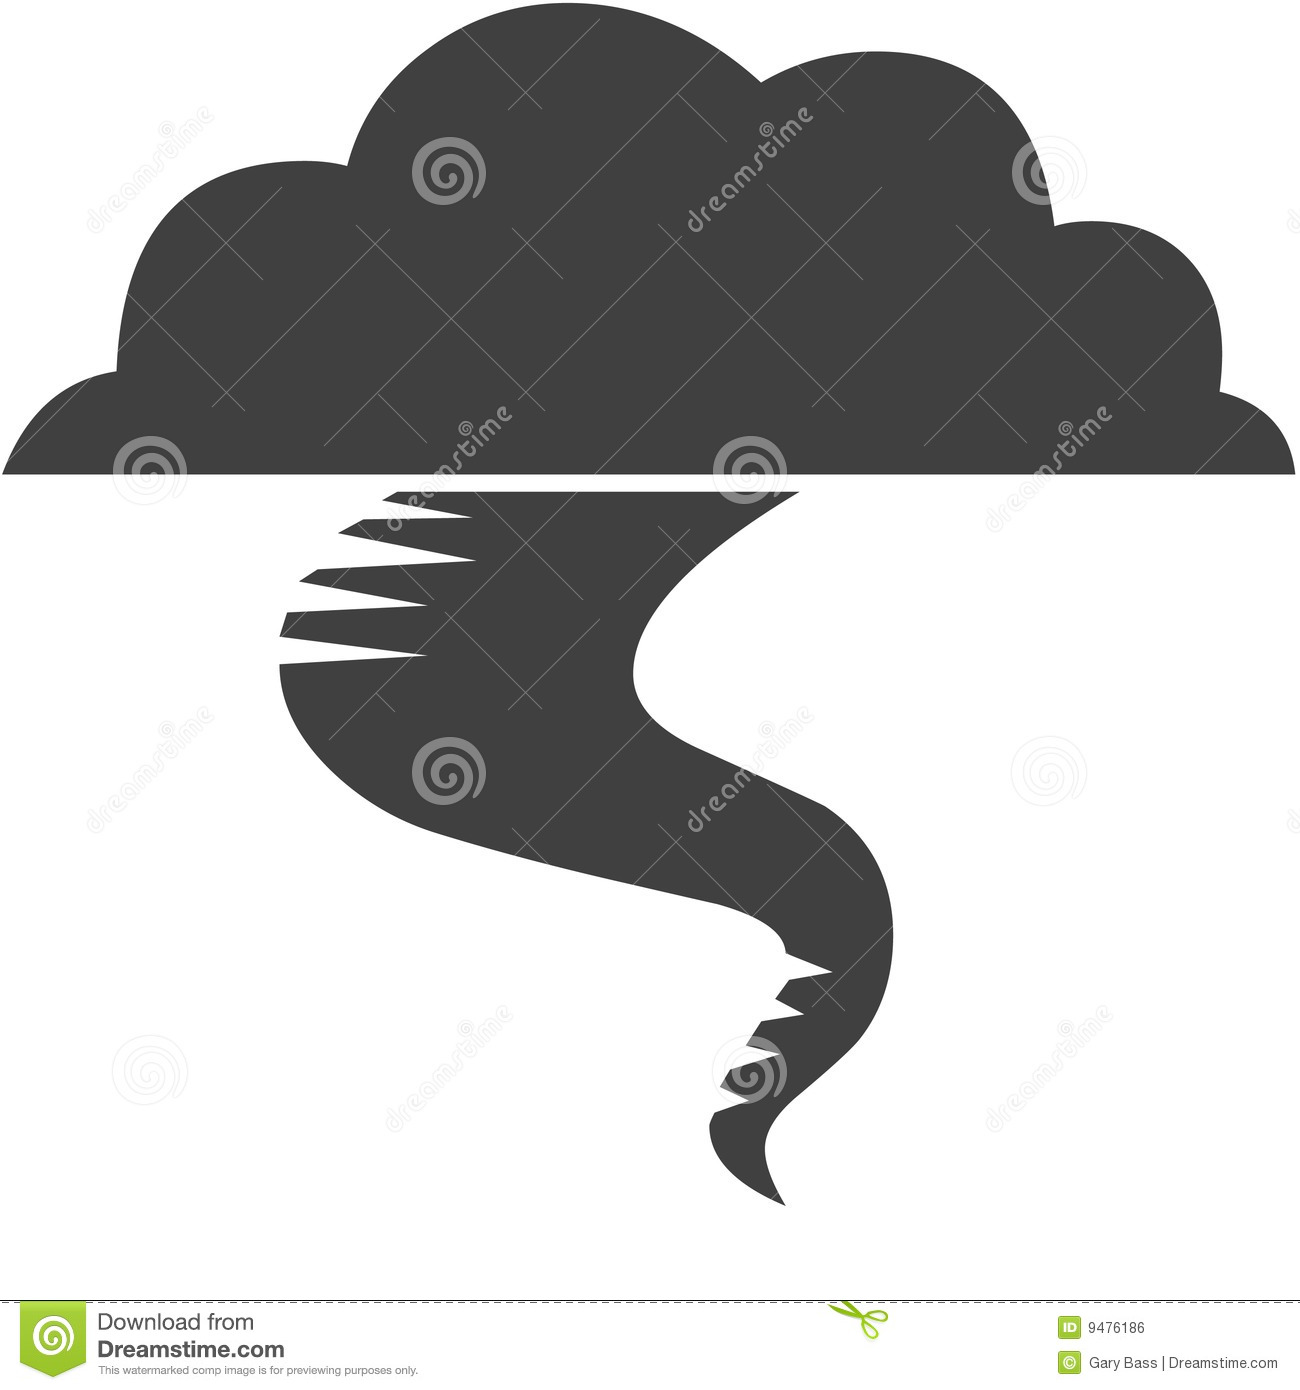 Tornado Symbol On Weather Map.Tornado Symbol Stock Illustration Illustration Of Weather 9476186